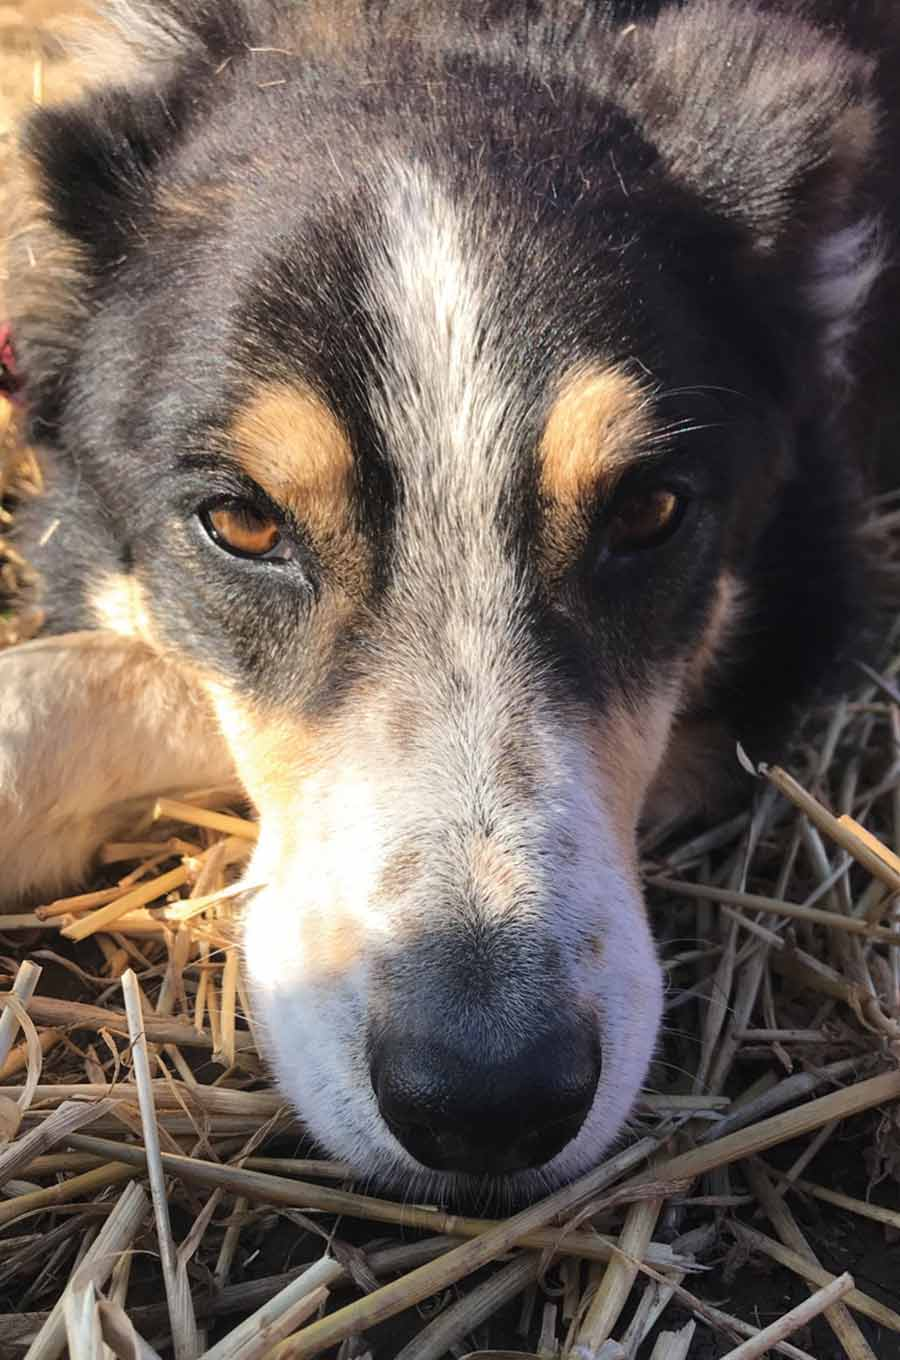 Close up of dog's face in field